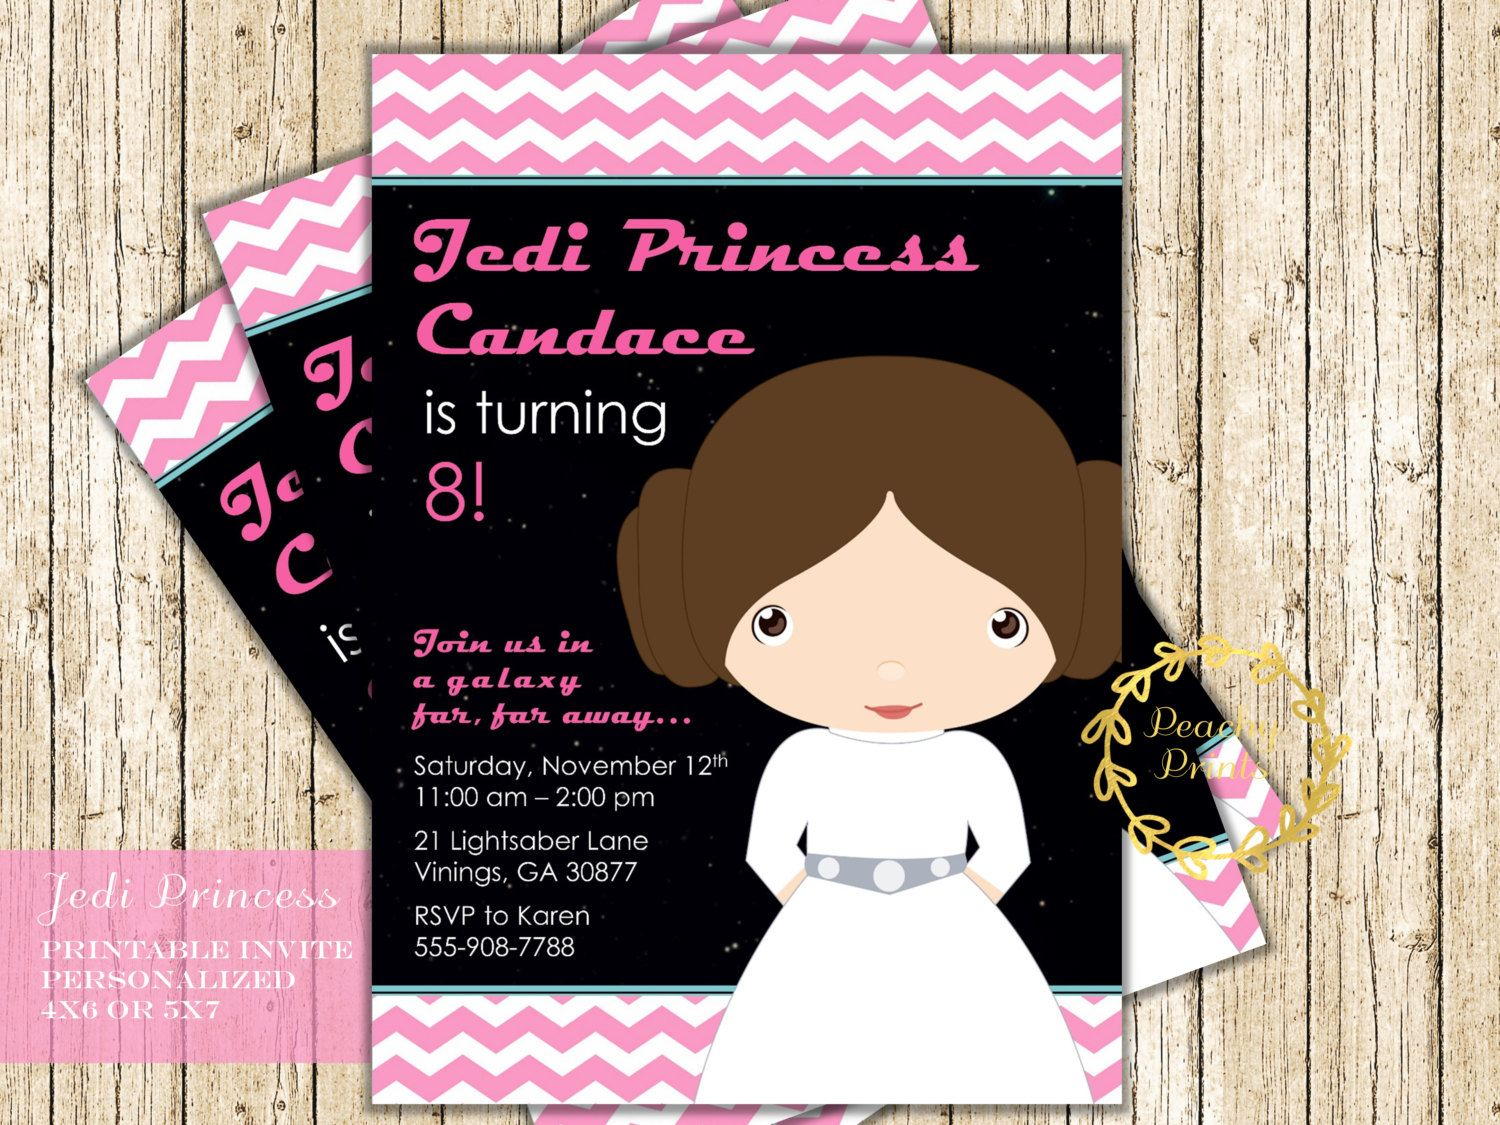 Star Wars Princess Leia Birthday Invitation Girl Party Digital Printable Invite By PeachyPrintsShop On Etsy